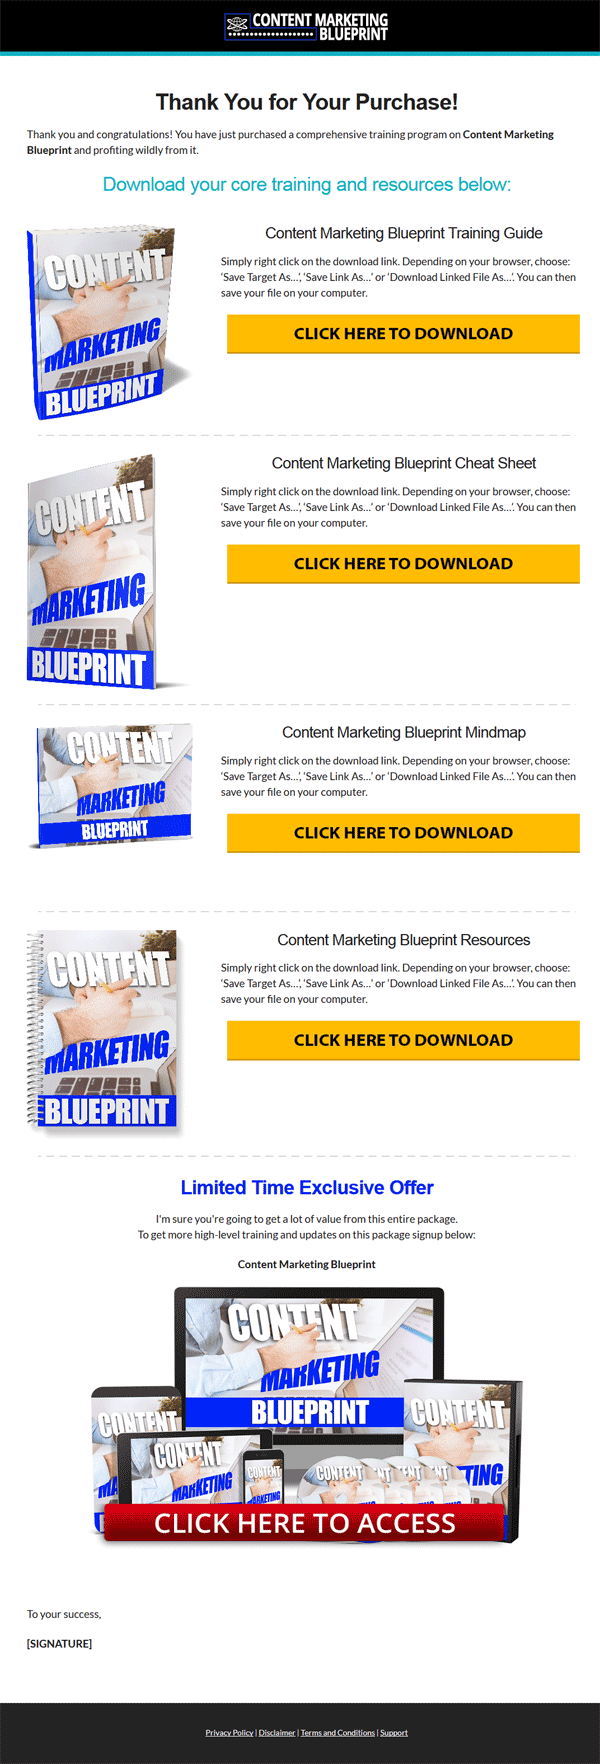 Content marketing blueprint ebook and videos mrr content marketing blueprint ebook and videos malvernweather Choice Image